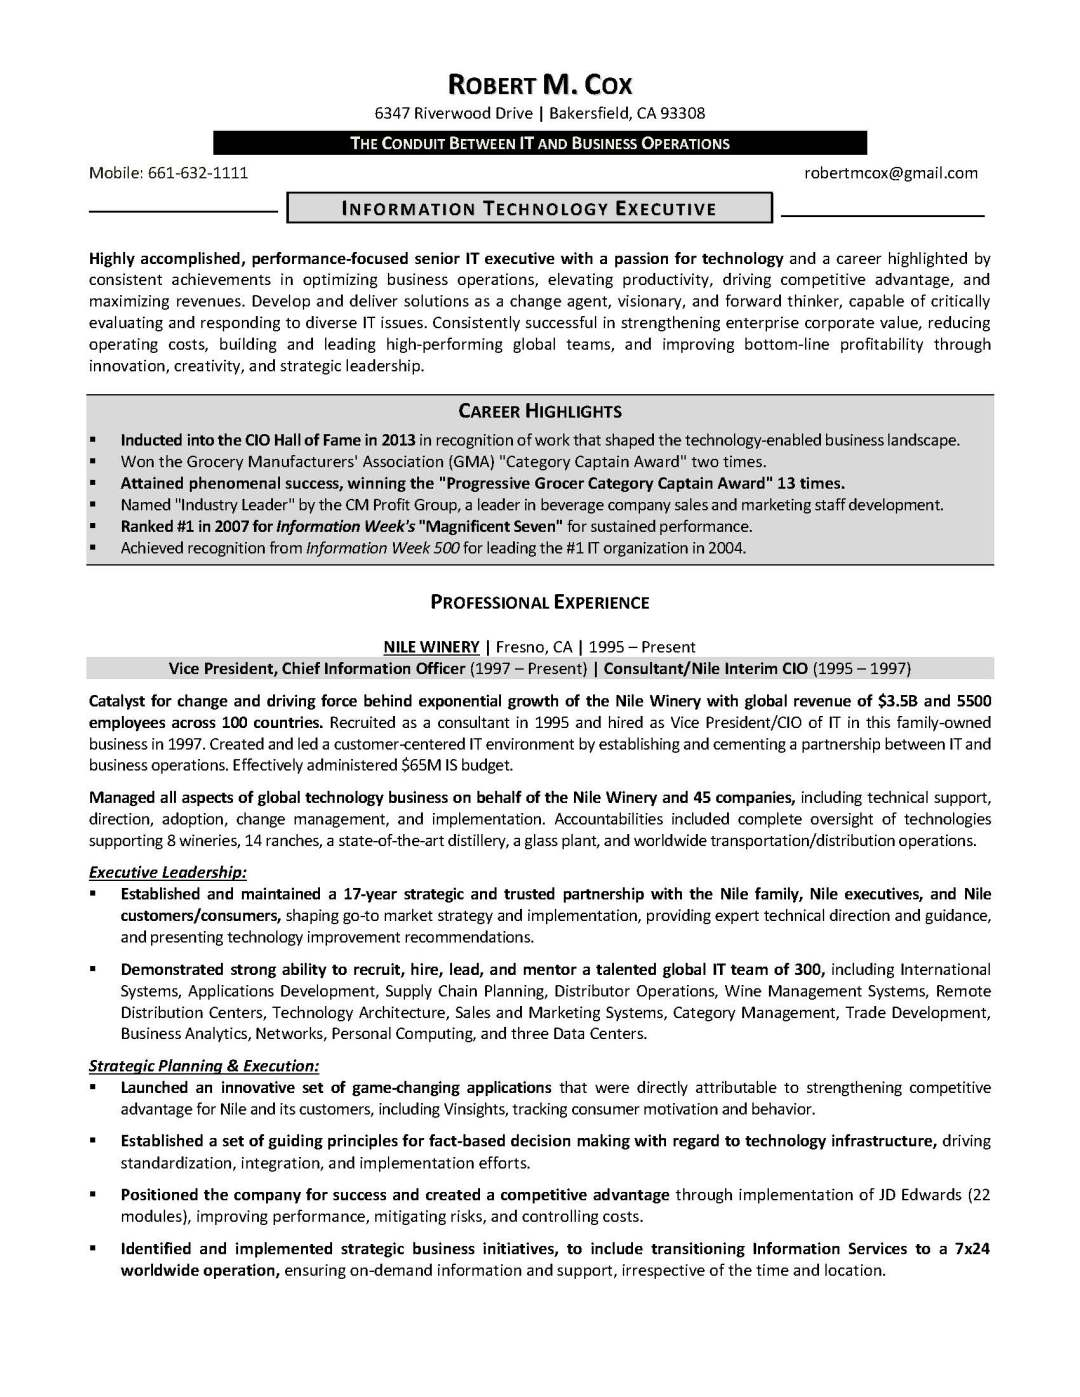 IT resume sample 3, provided by Elite Resume Writing Services